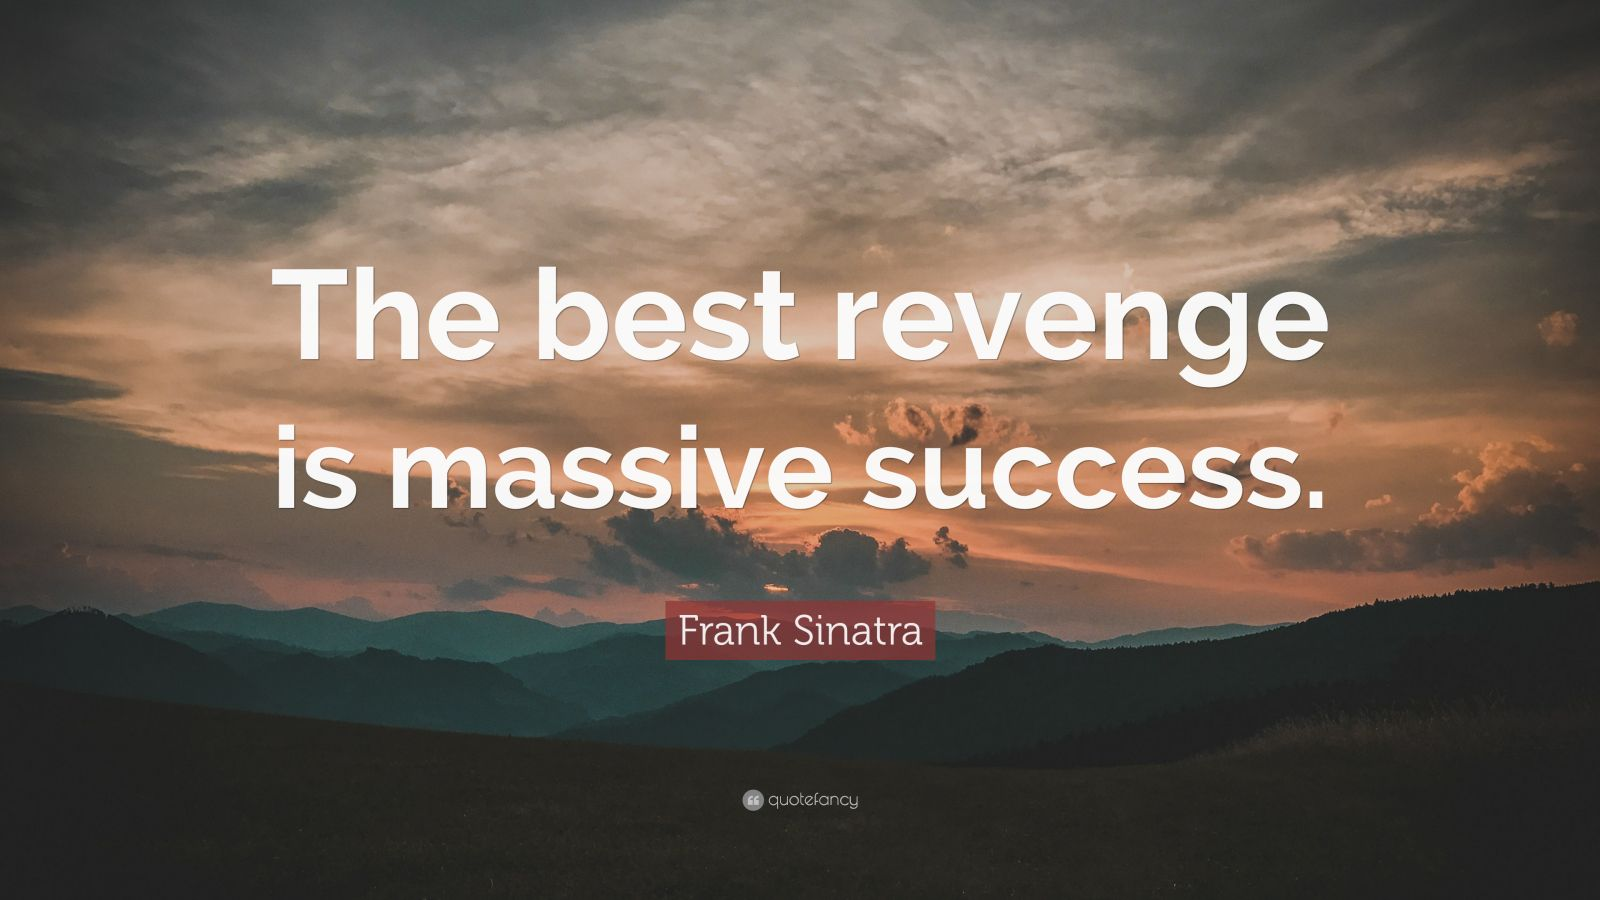 Turning 30 Quotes Wallpapers Frank Sinatra Quote The Best Revenge Is Massive Success